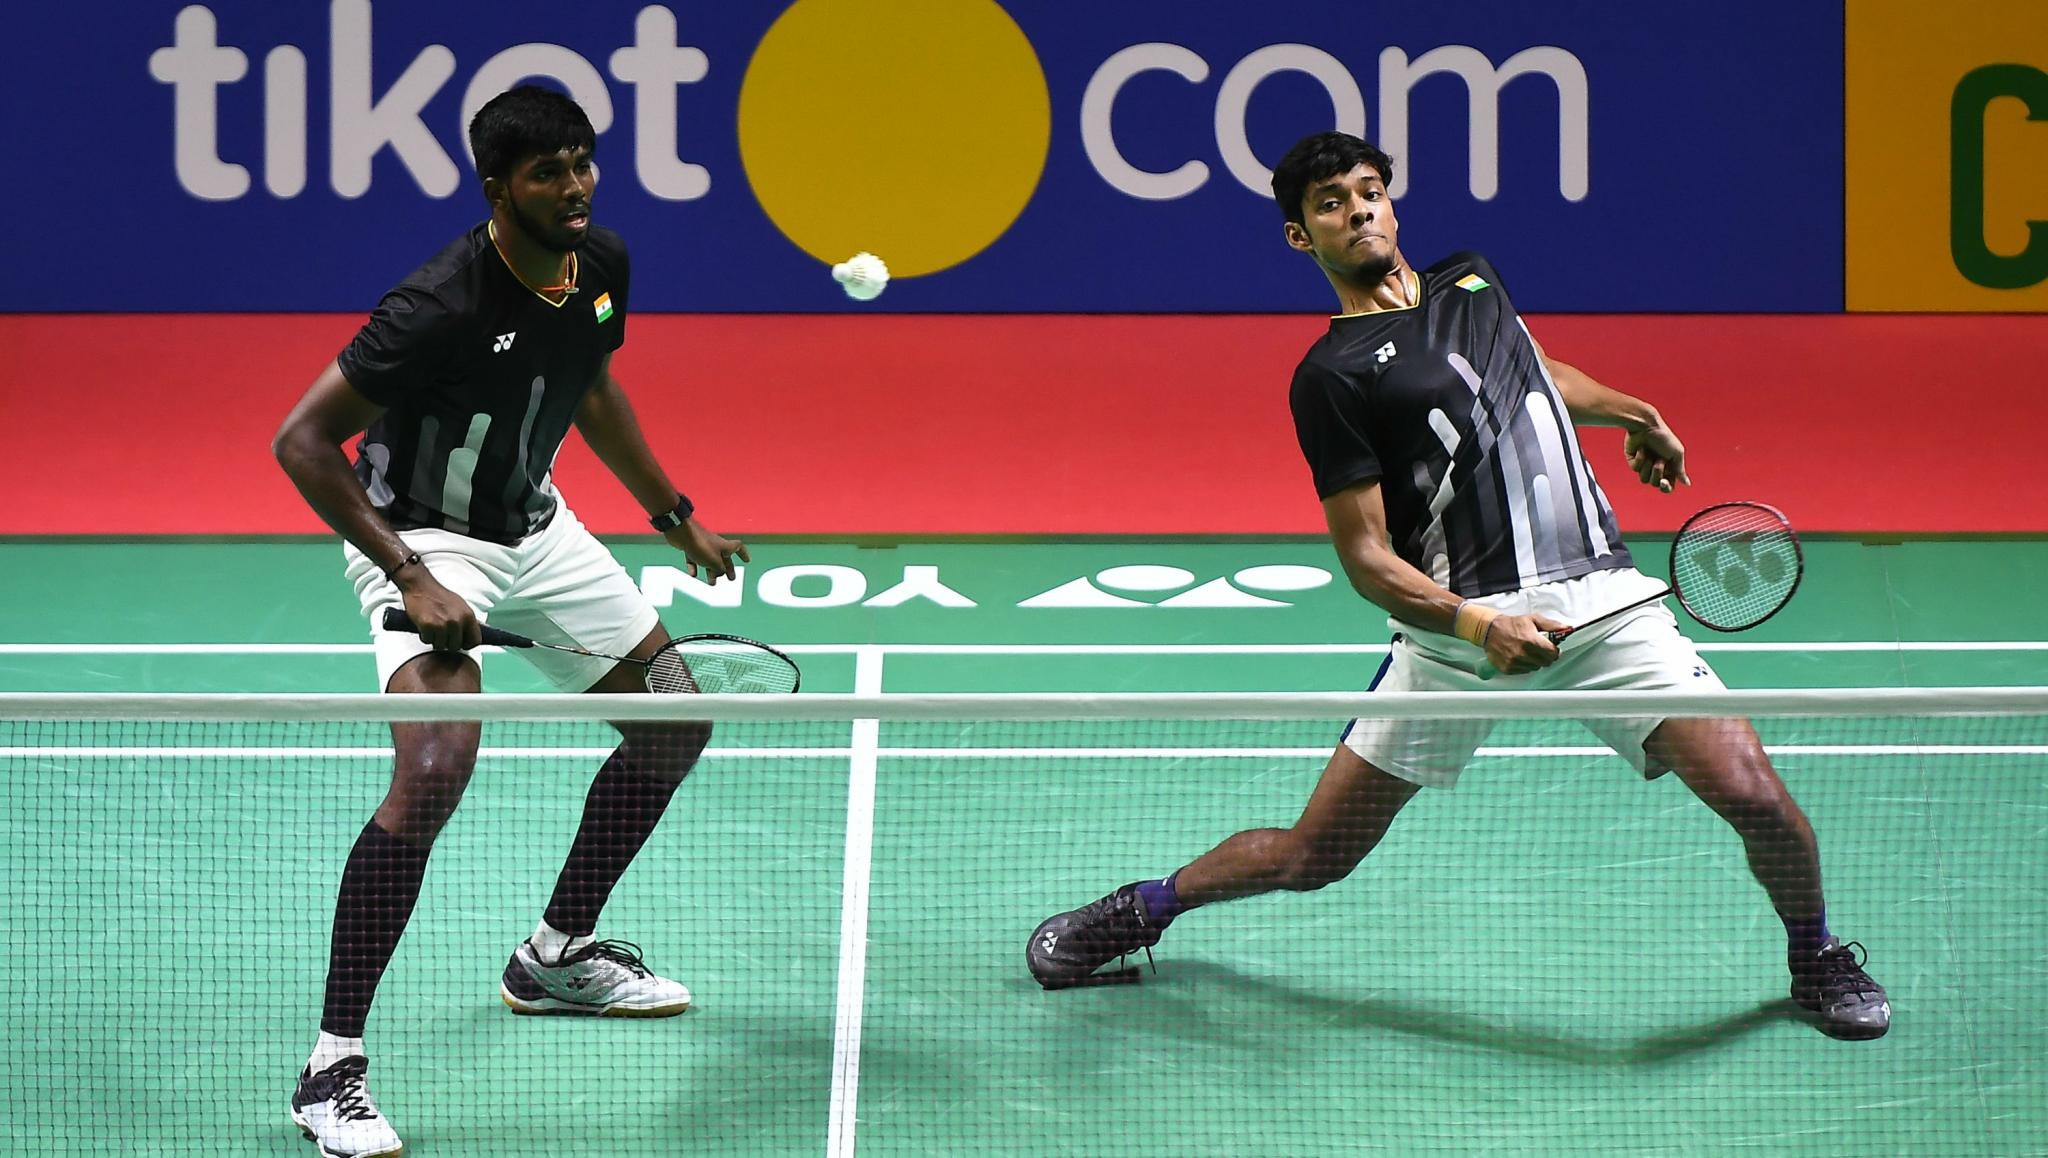 Satwiksairaj Rankireddy-Chirag Shetty Re-enter Top 10 in Doubles, After They Made It to BWF World Tour Finals